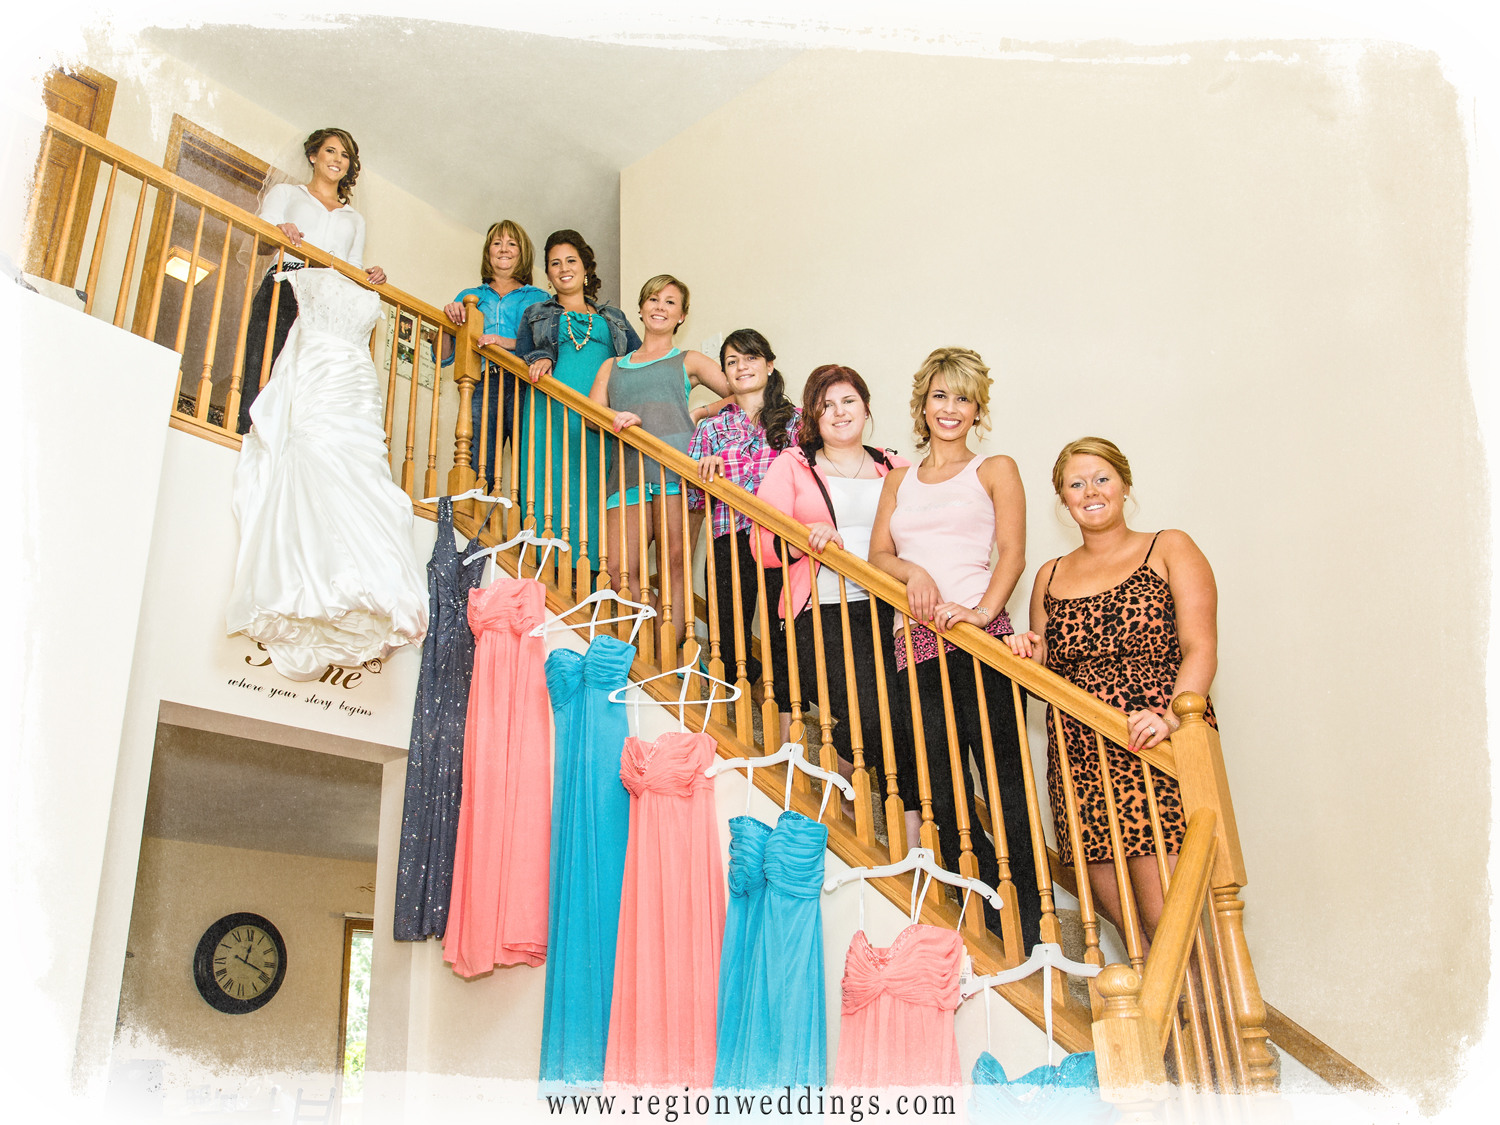 The bride and her bridesmaids pose on stairs overlooking their wedding day dresses.